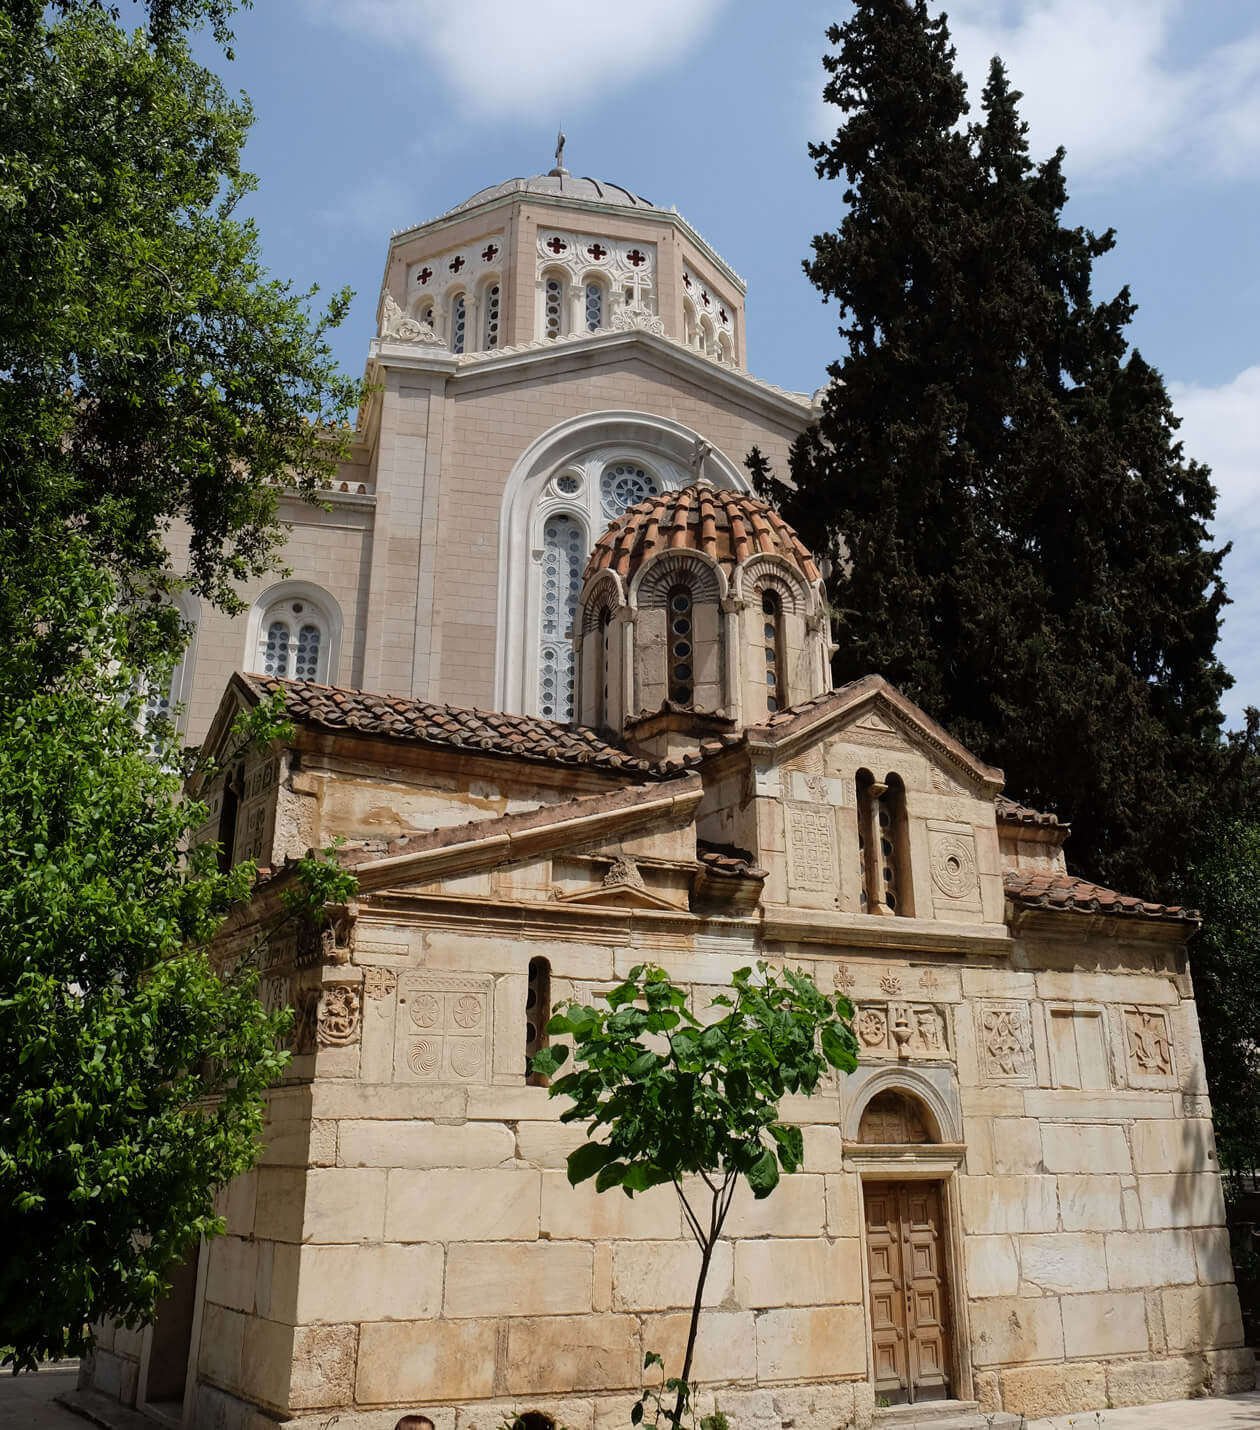 The tiny Agios Eleftherios church next to the Metropolitan cathedral